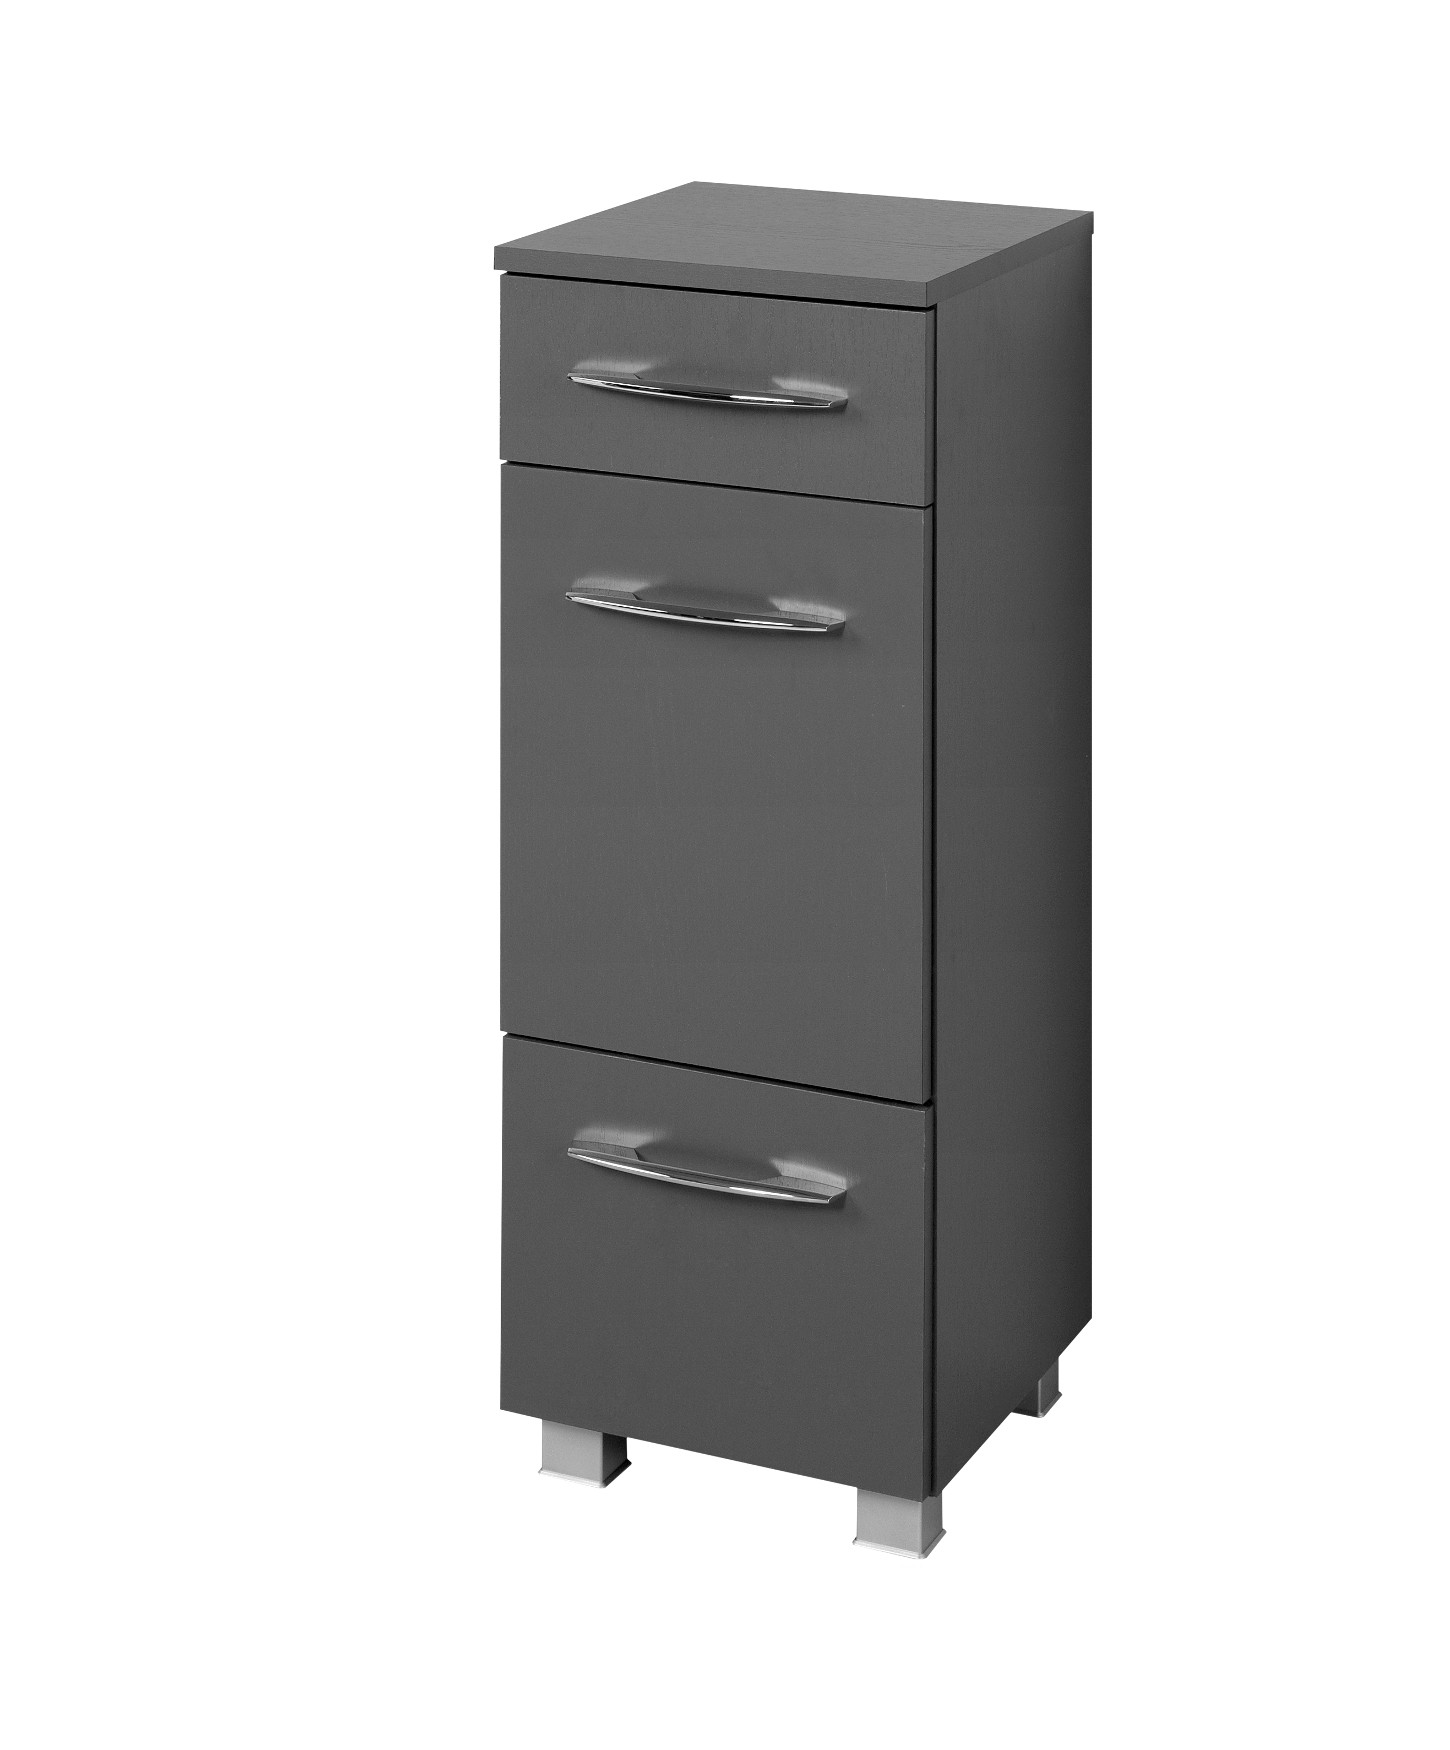 badezimmer unterschrank portofino badschrank badezimmerschrank 30cm graphit grau ebay. Black Bedroom Furniture Sets. Home Design Ideas